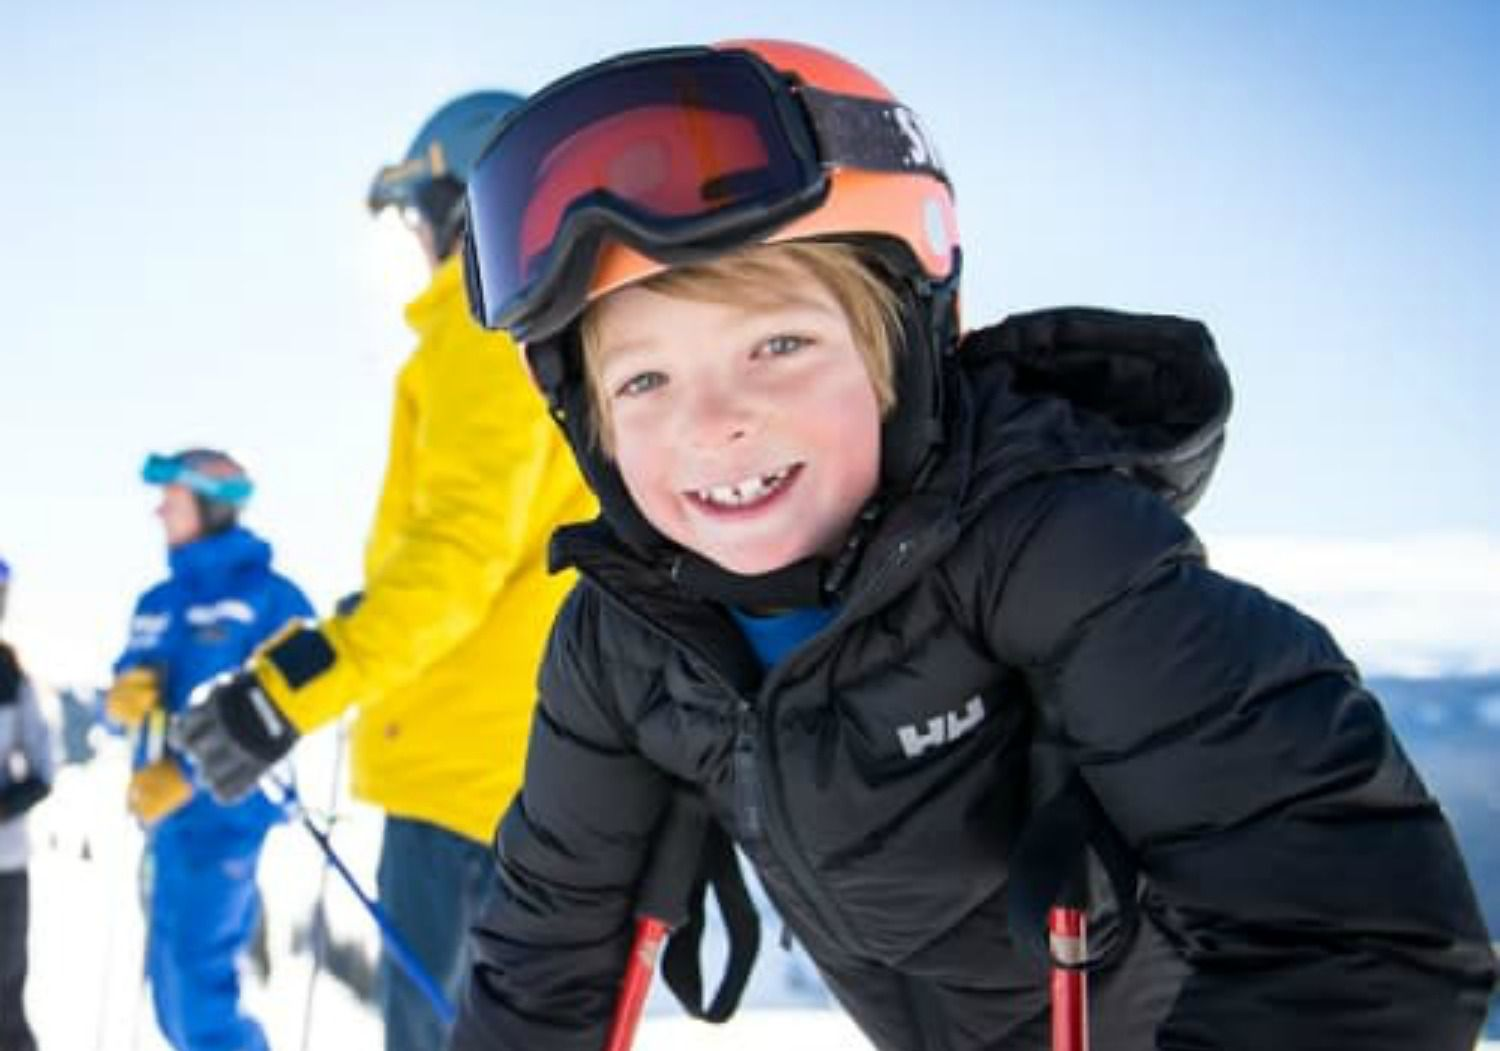 201 Places Kids Ski and Snowboard for Free 2017-2018